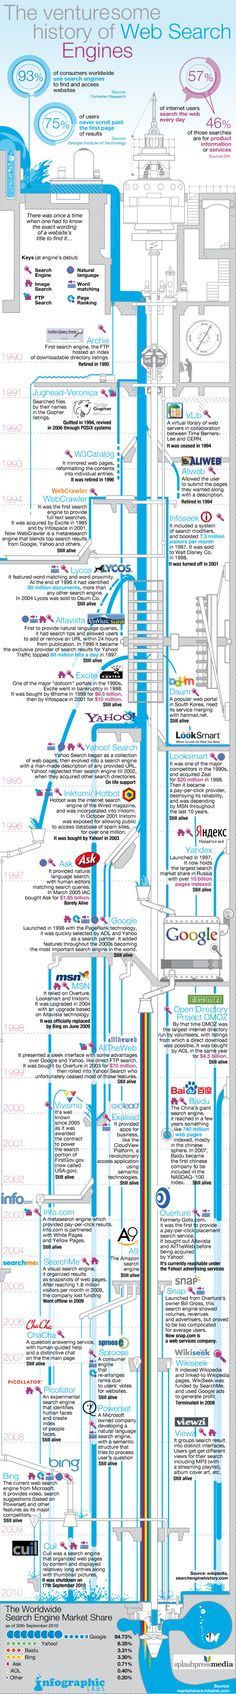 After the Google History infographic, for this infographic we had a look at the history of search engines over the last 20 years.